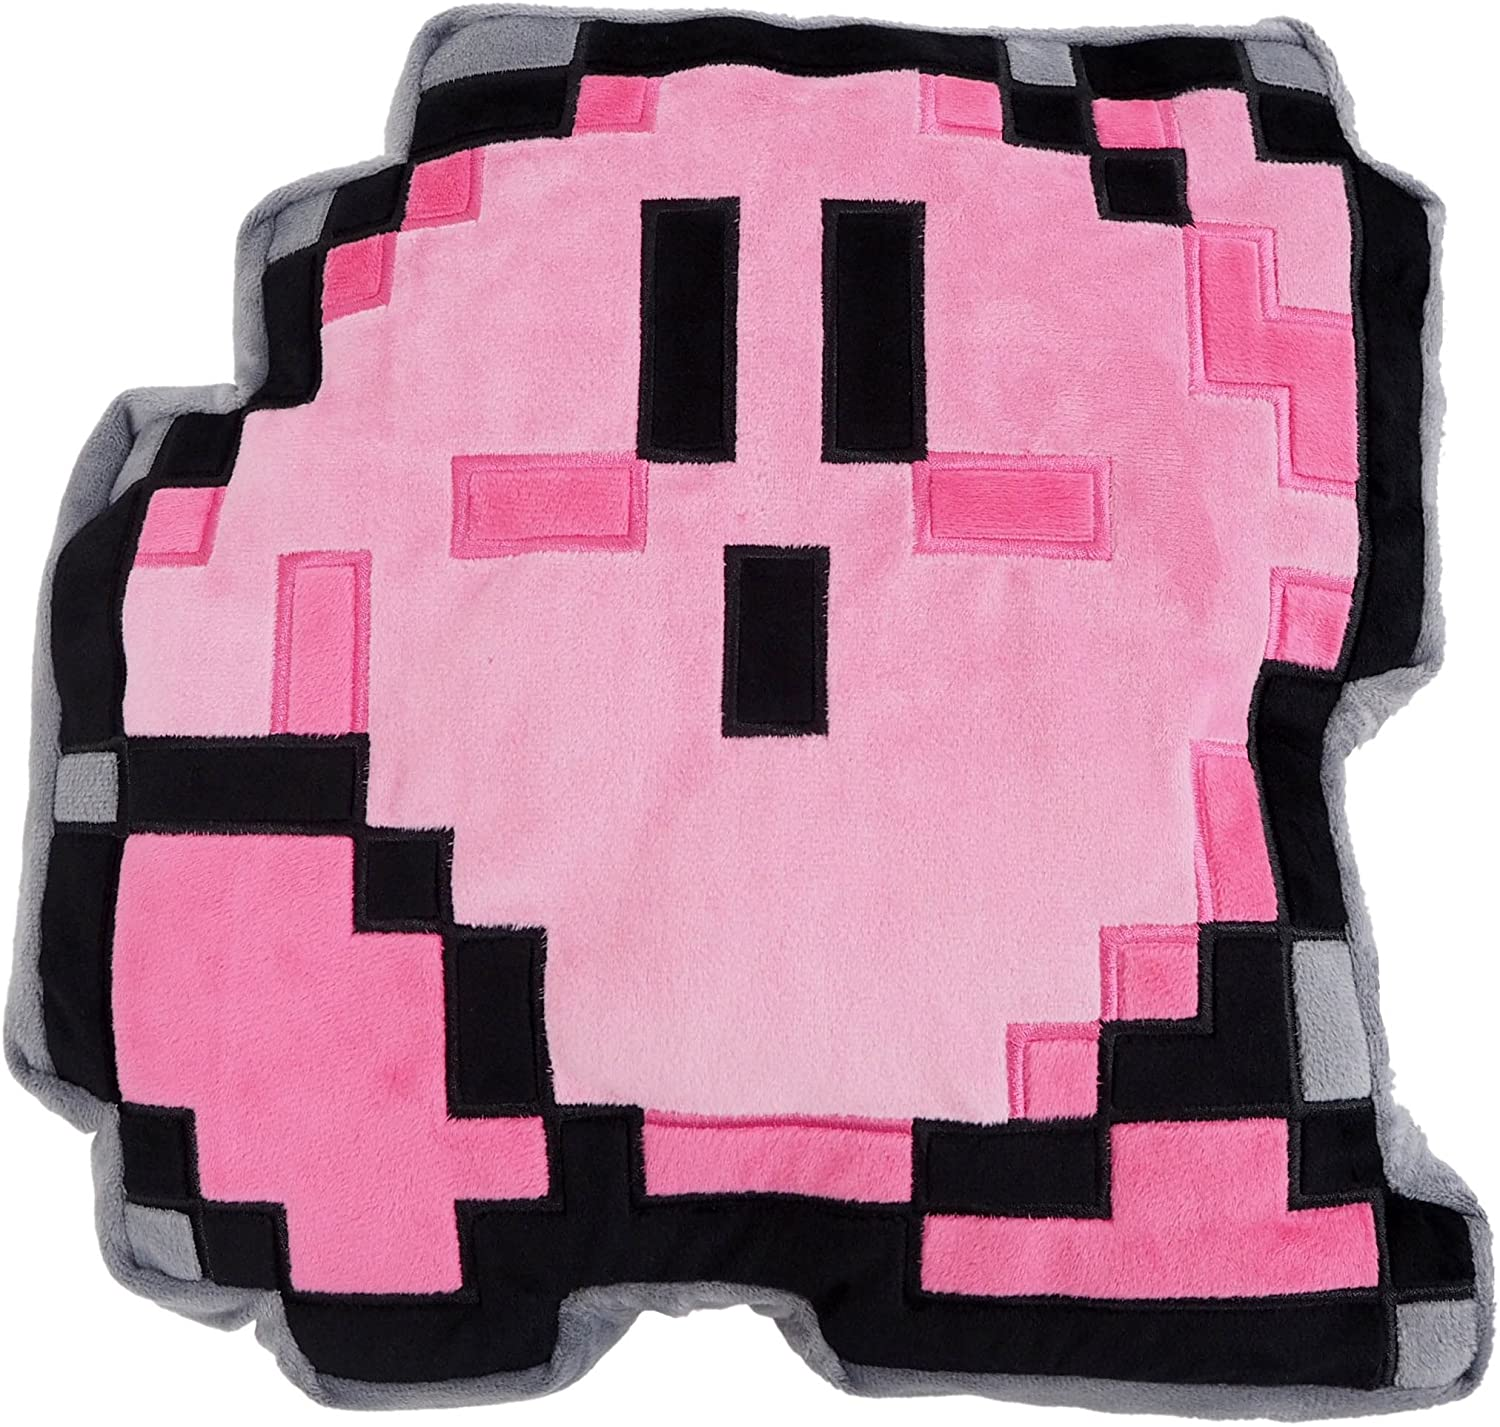 KIRBY 8 BIT CUSHION PLUSH